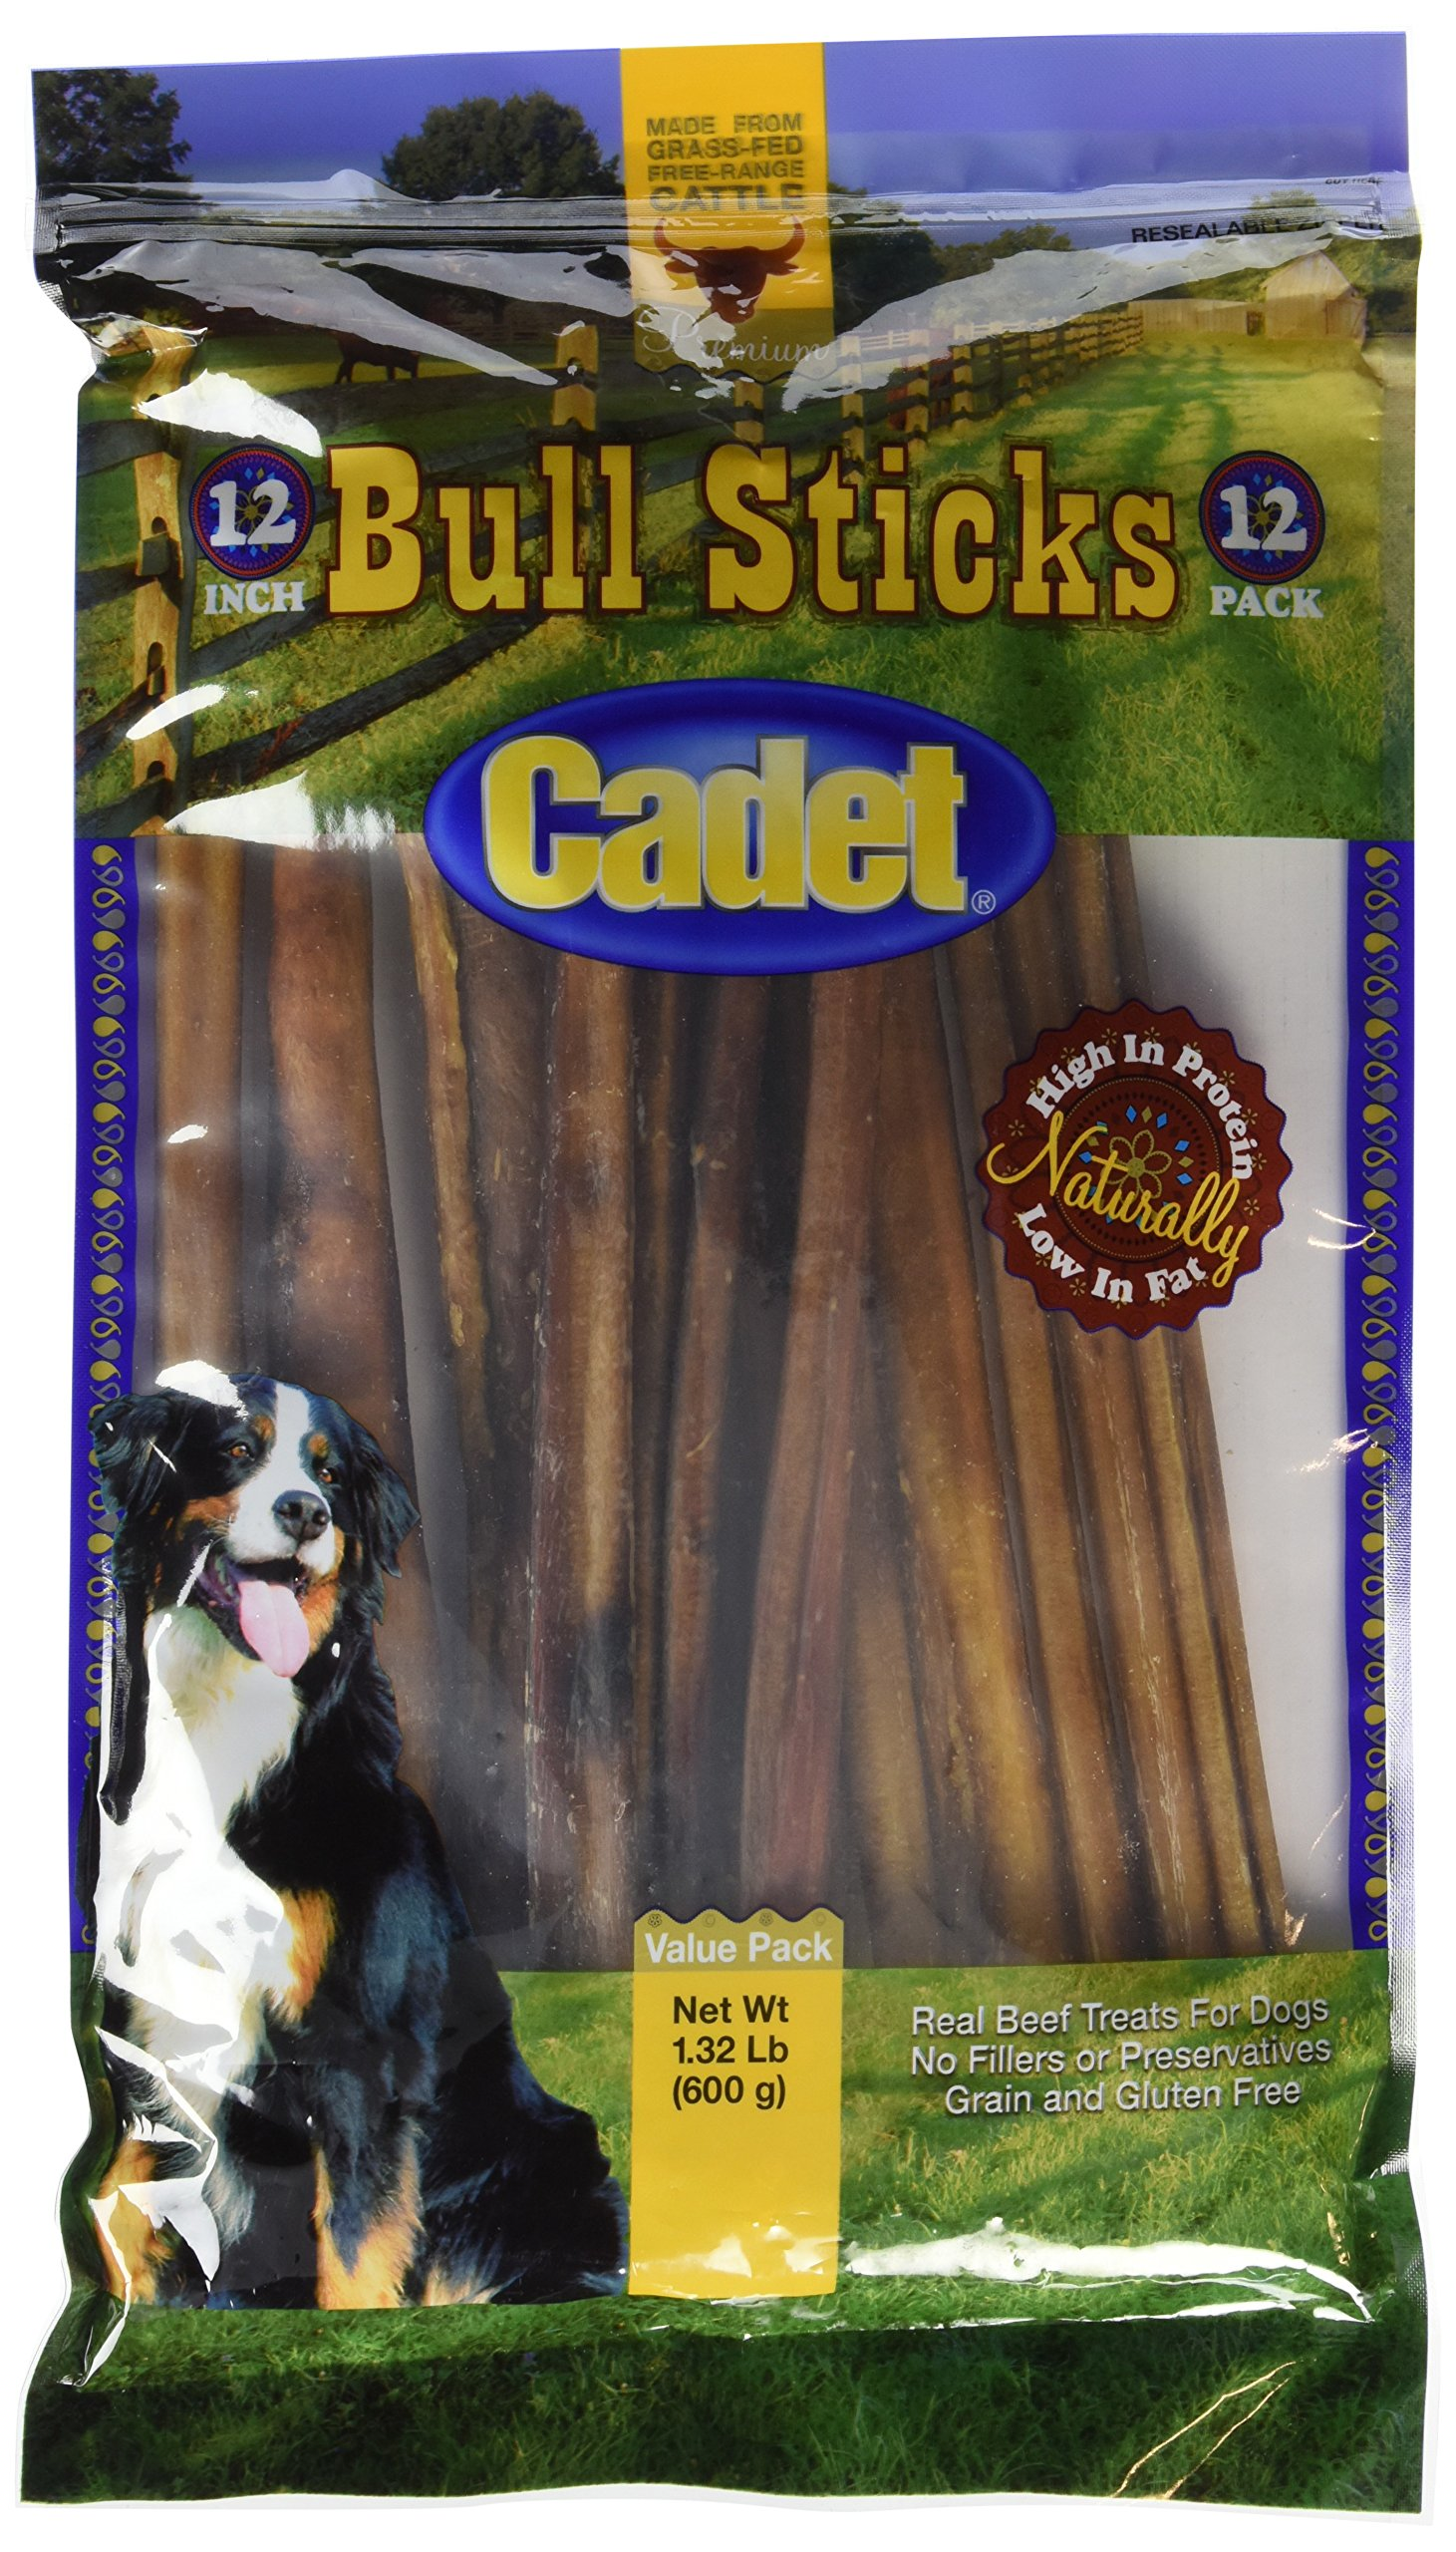 Cadet Gourmet Bull Sticks 12 Pack by Cadet